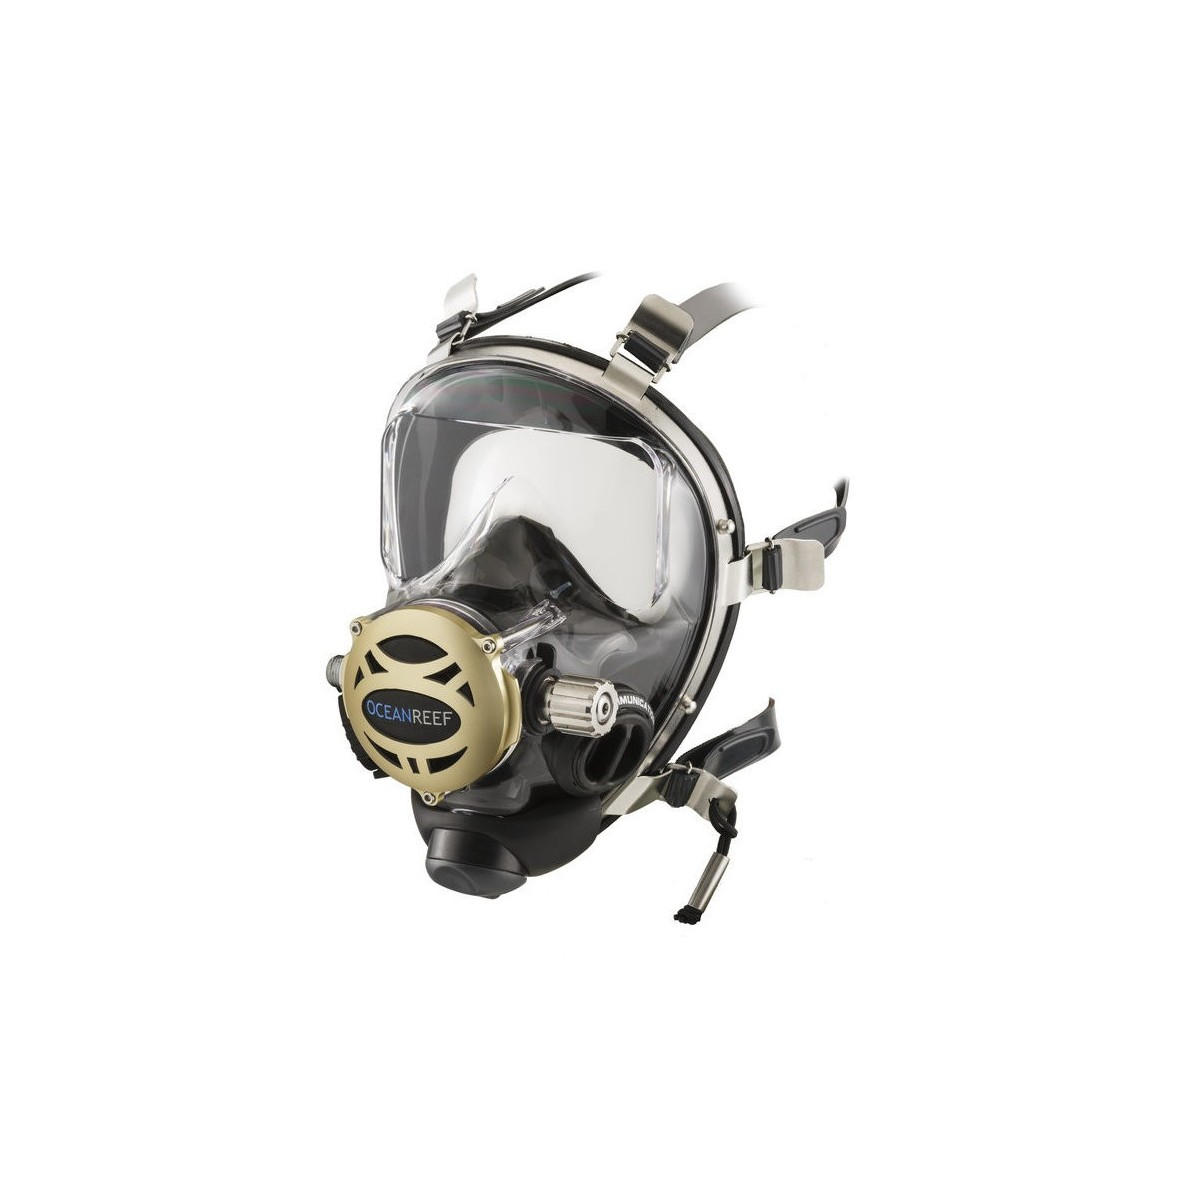 Ocean Reef Predator Full Face Mask